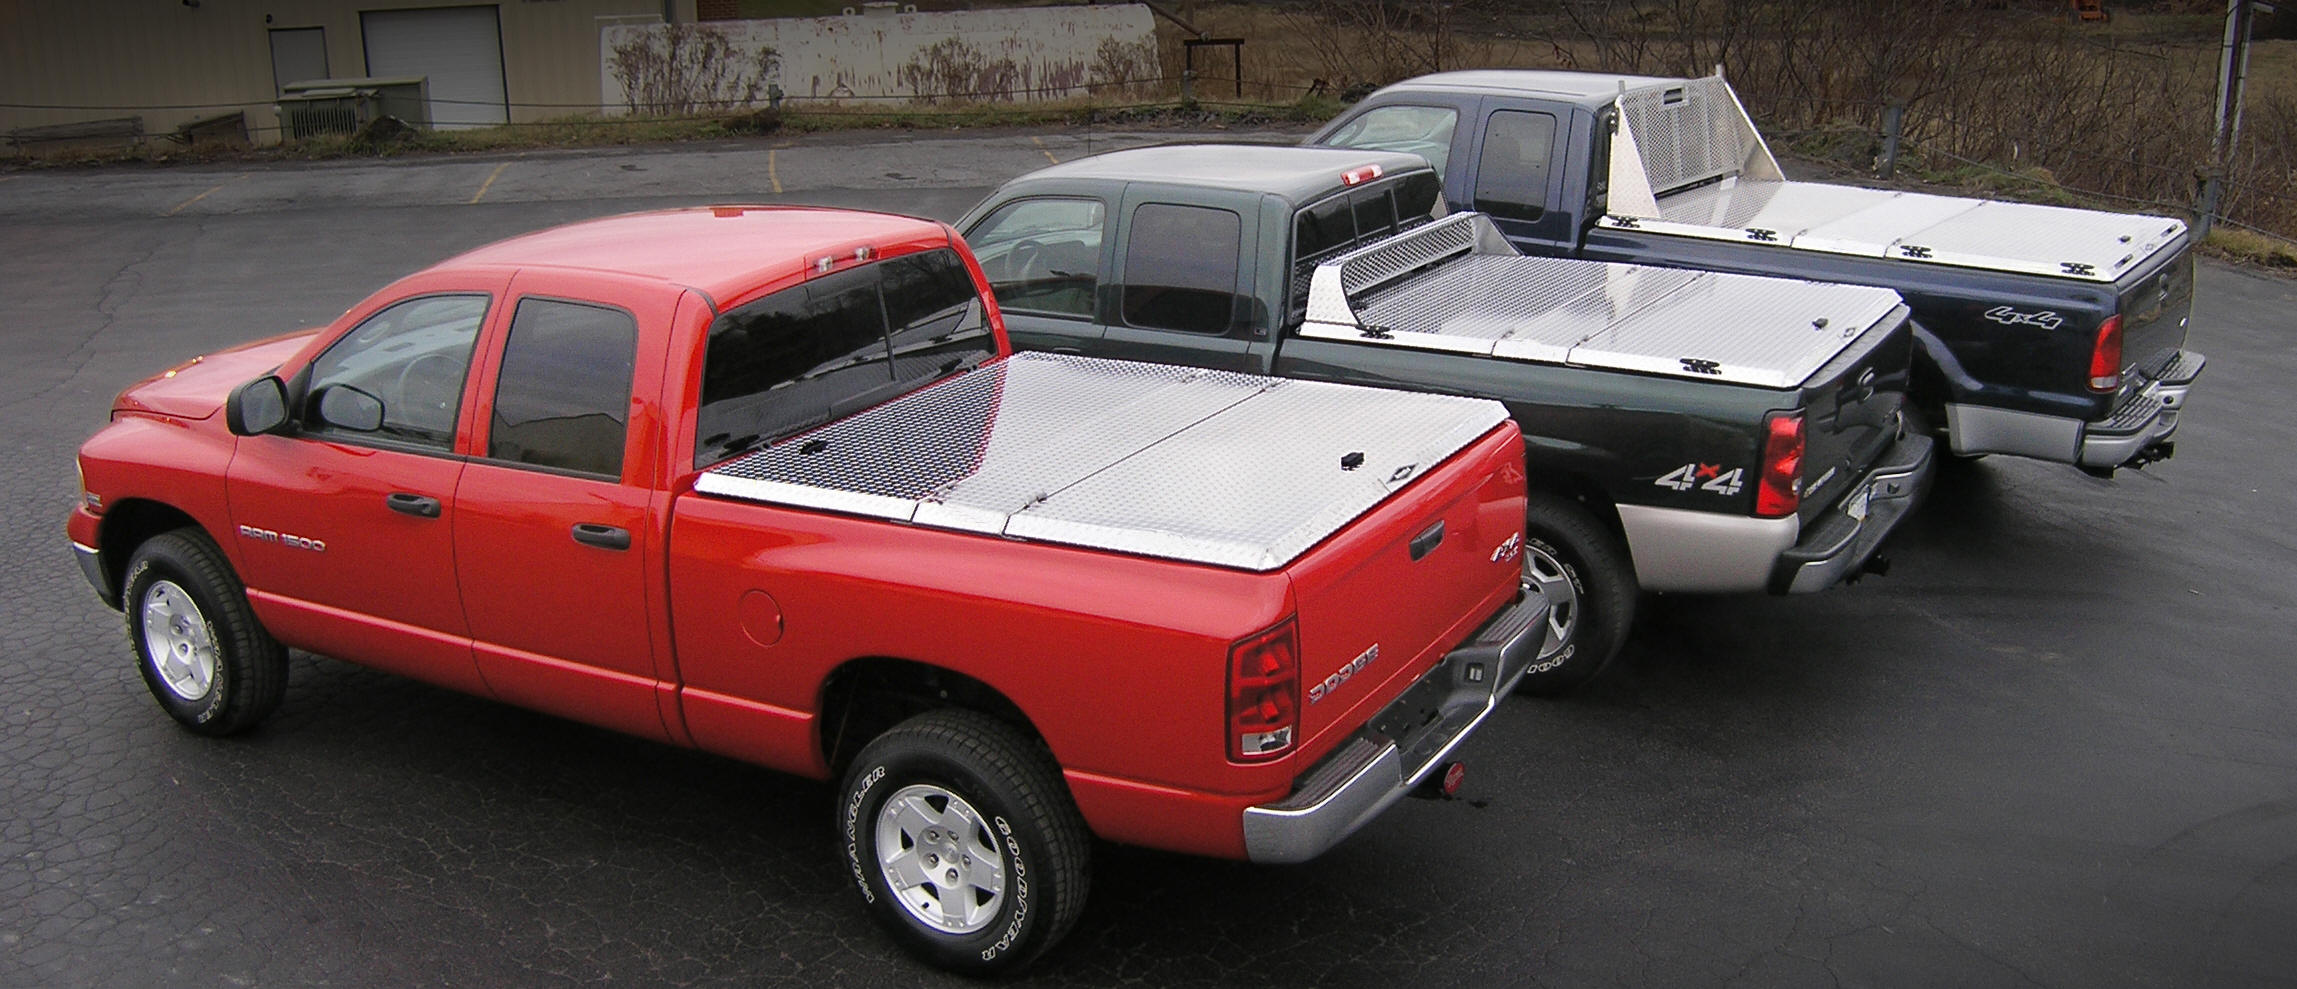 Roof Top Tent On Tonneau Covertruck Bed Rack For Roof Top